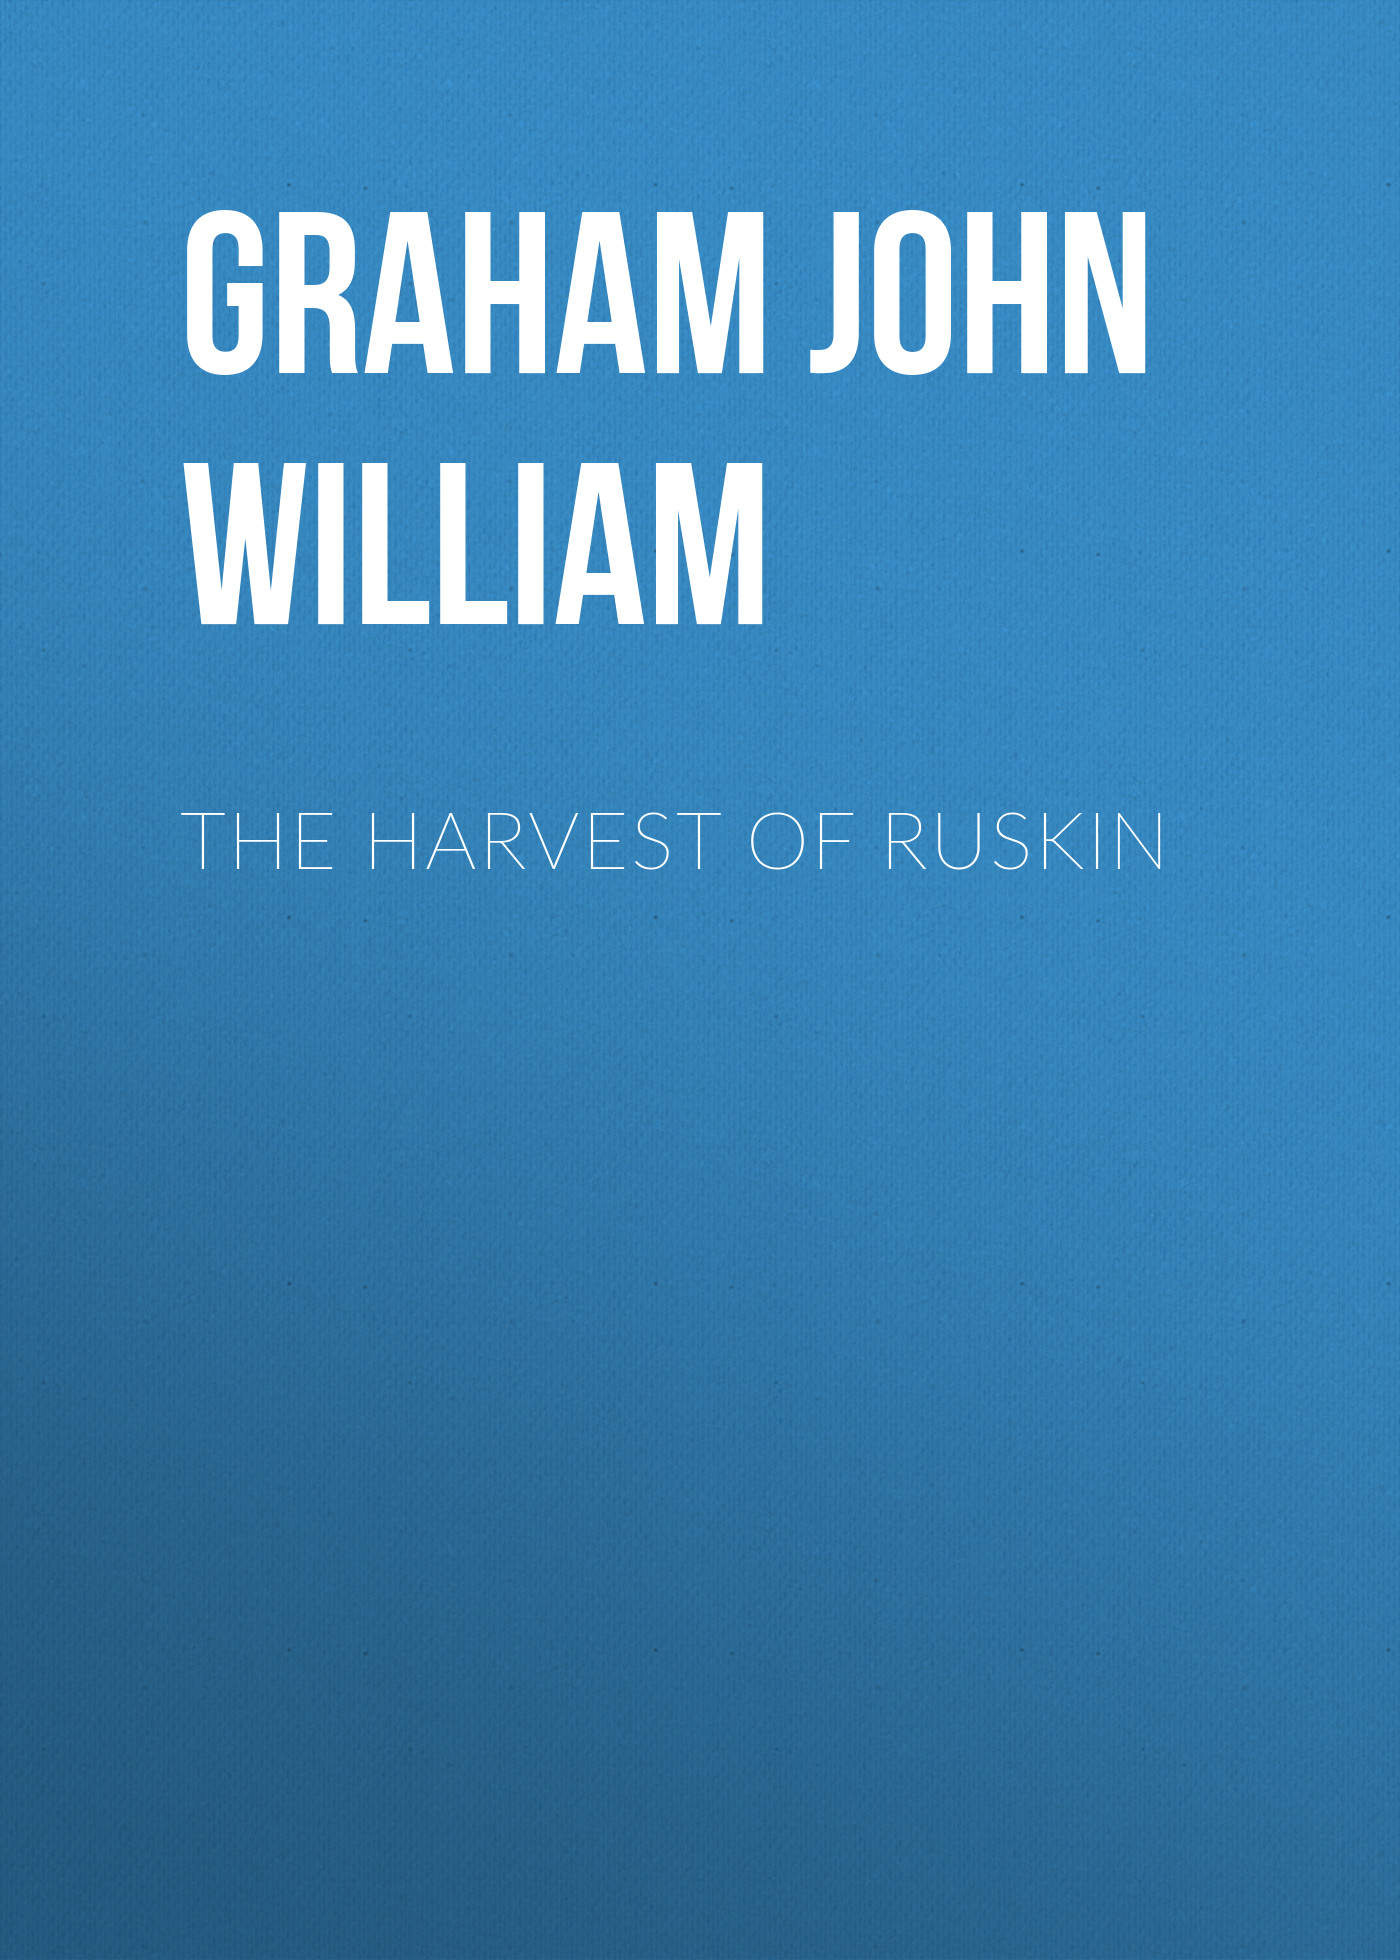 Graham John William The Harvest of Ruskin